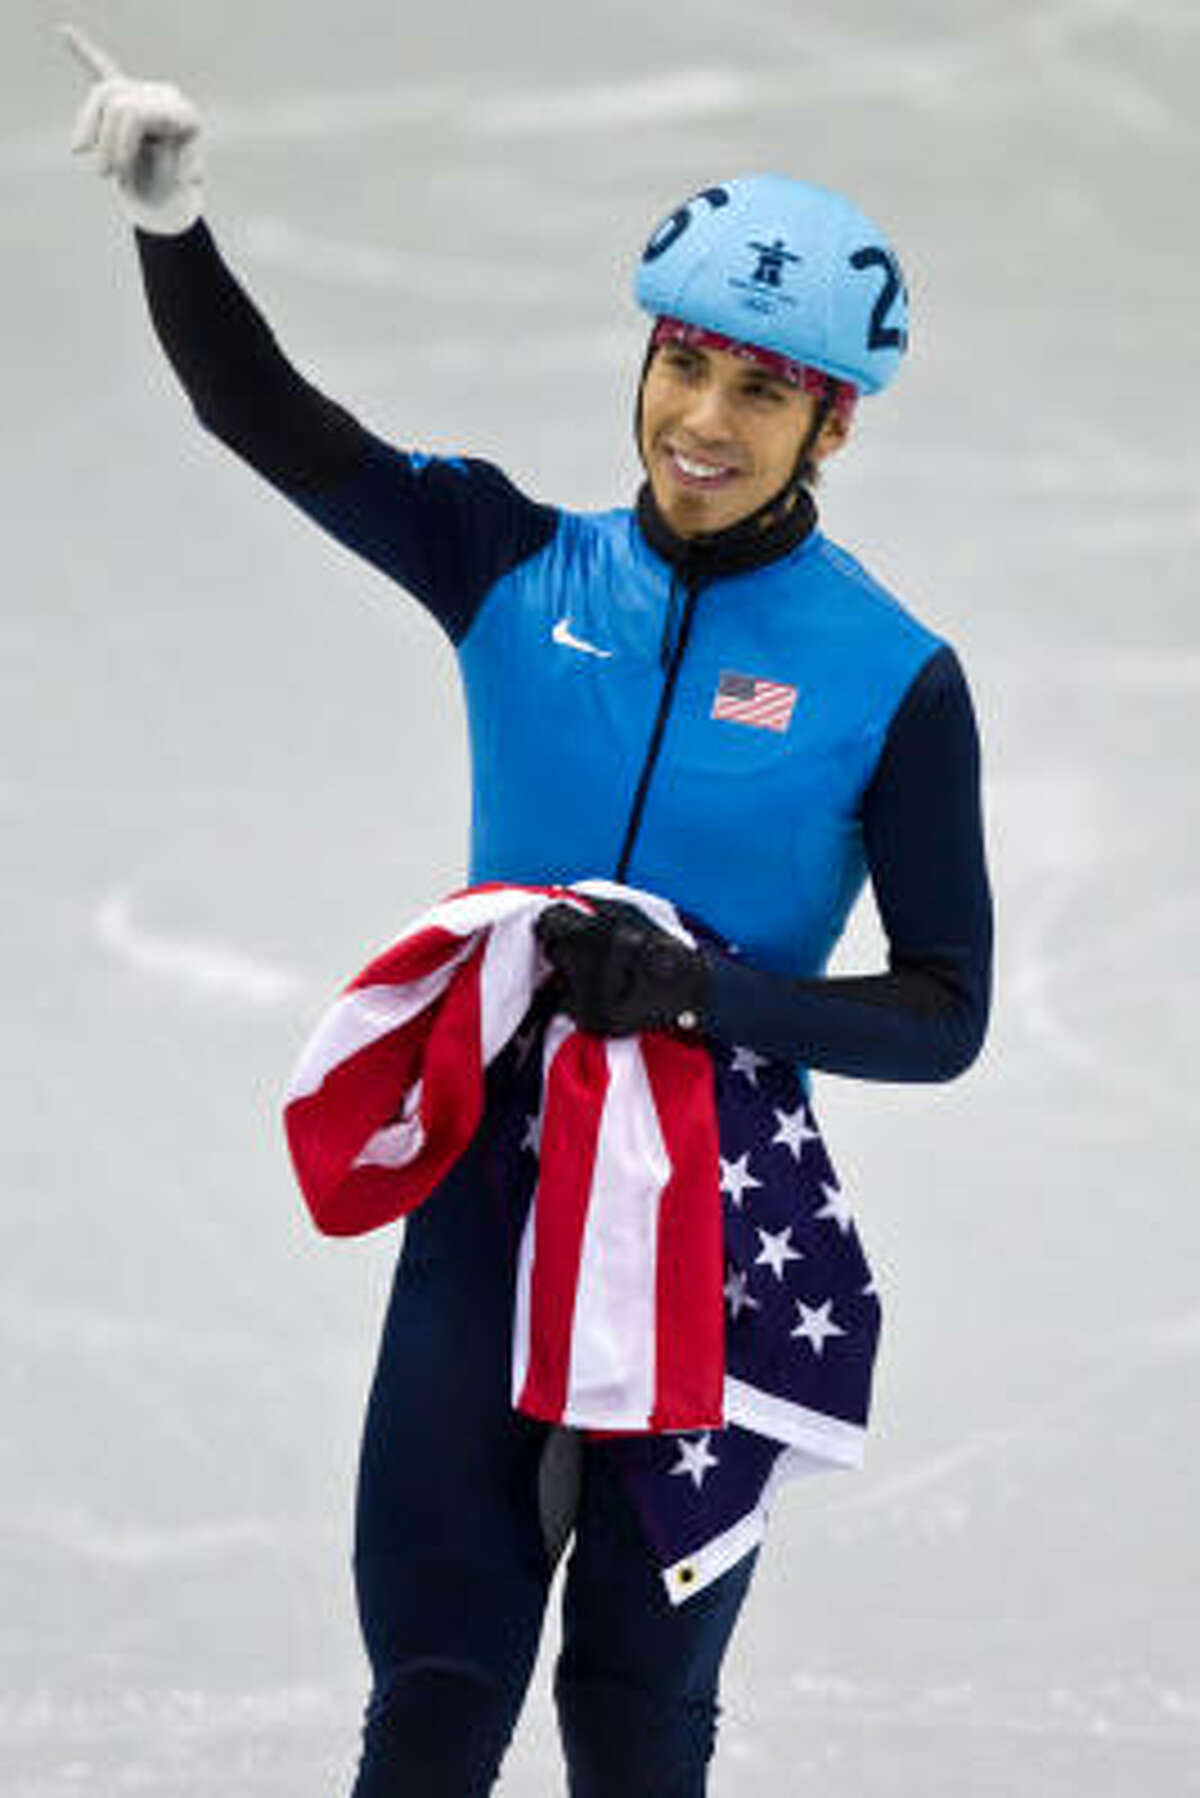 Team USA's Apolo Anton Ohno waves to the crowd after the men's 1,000-meter short track speedskating final on Feb. 20. Ohno won the bronze for his seventh all-time medal, breaking the record for most medals by a U.S. athlete in the Winter Games.